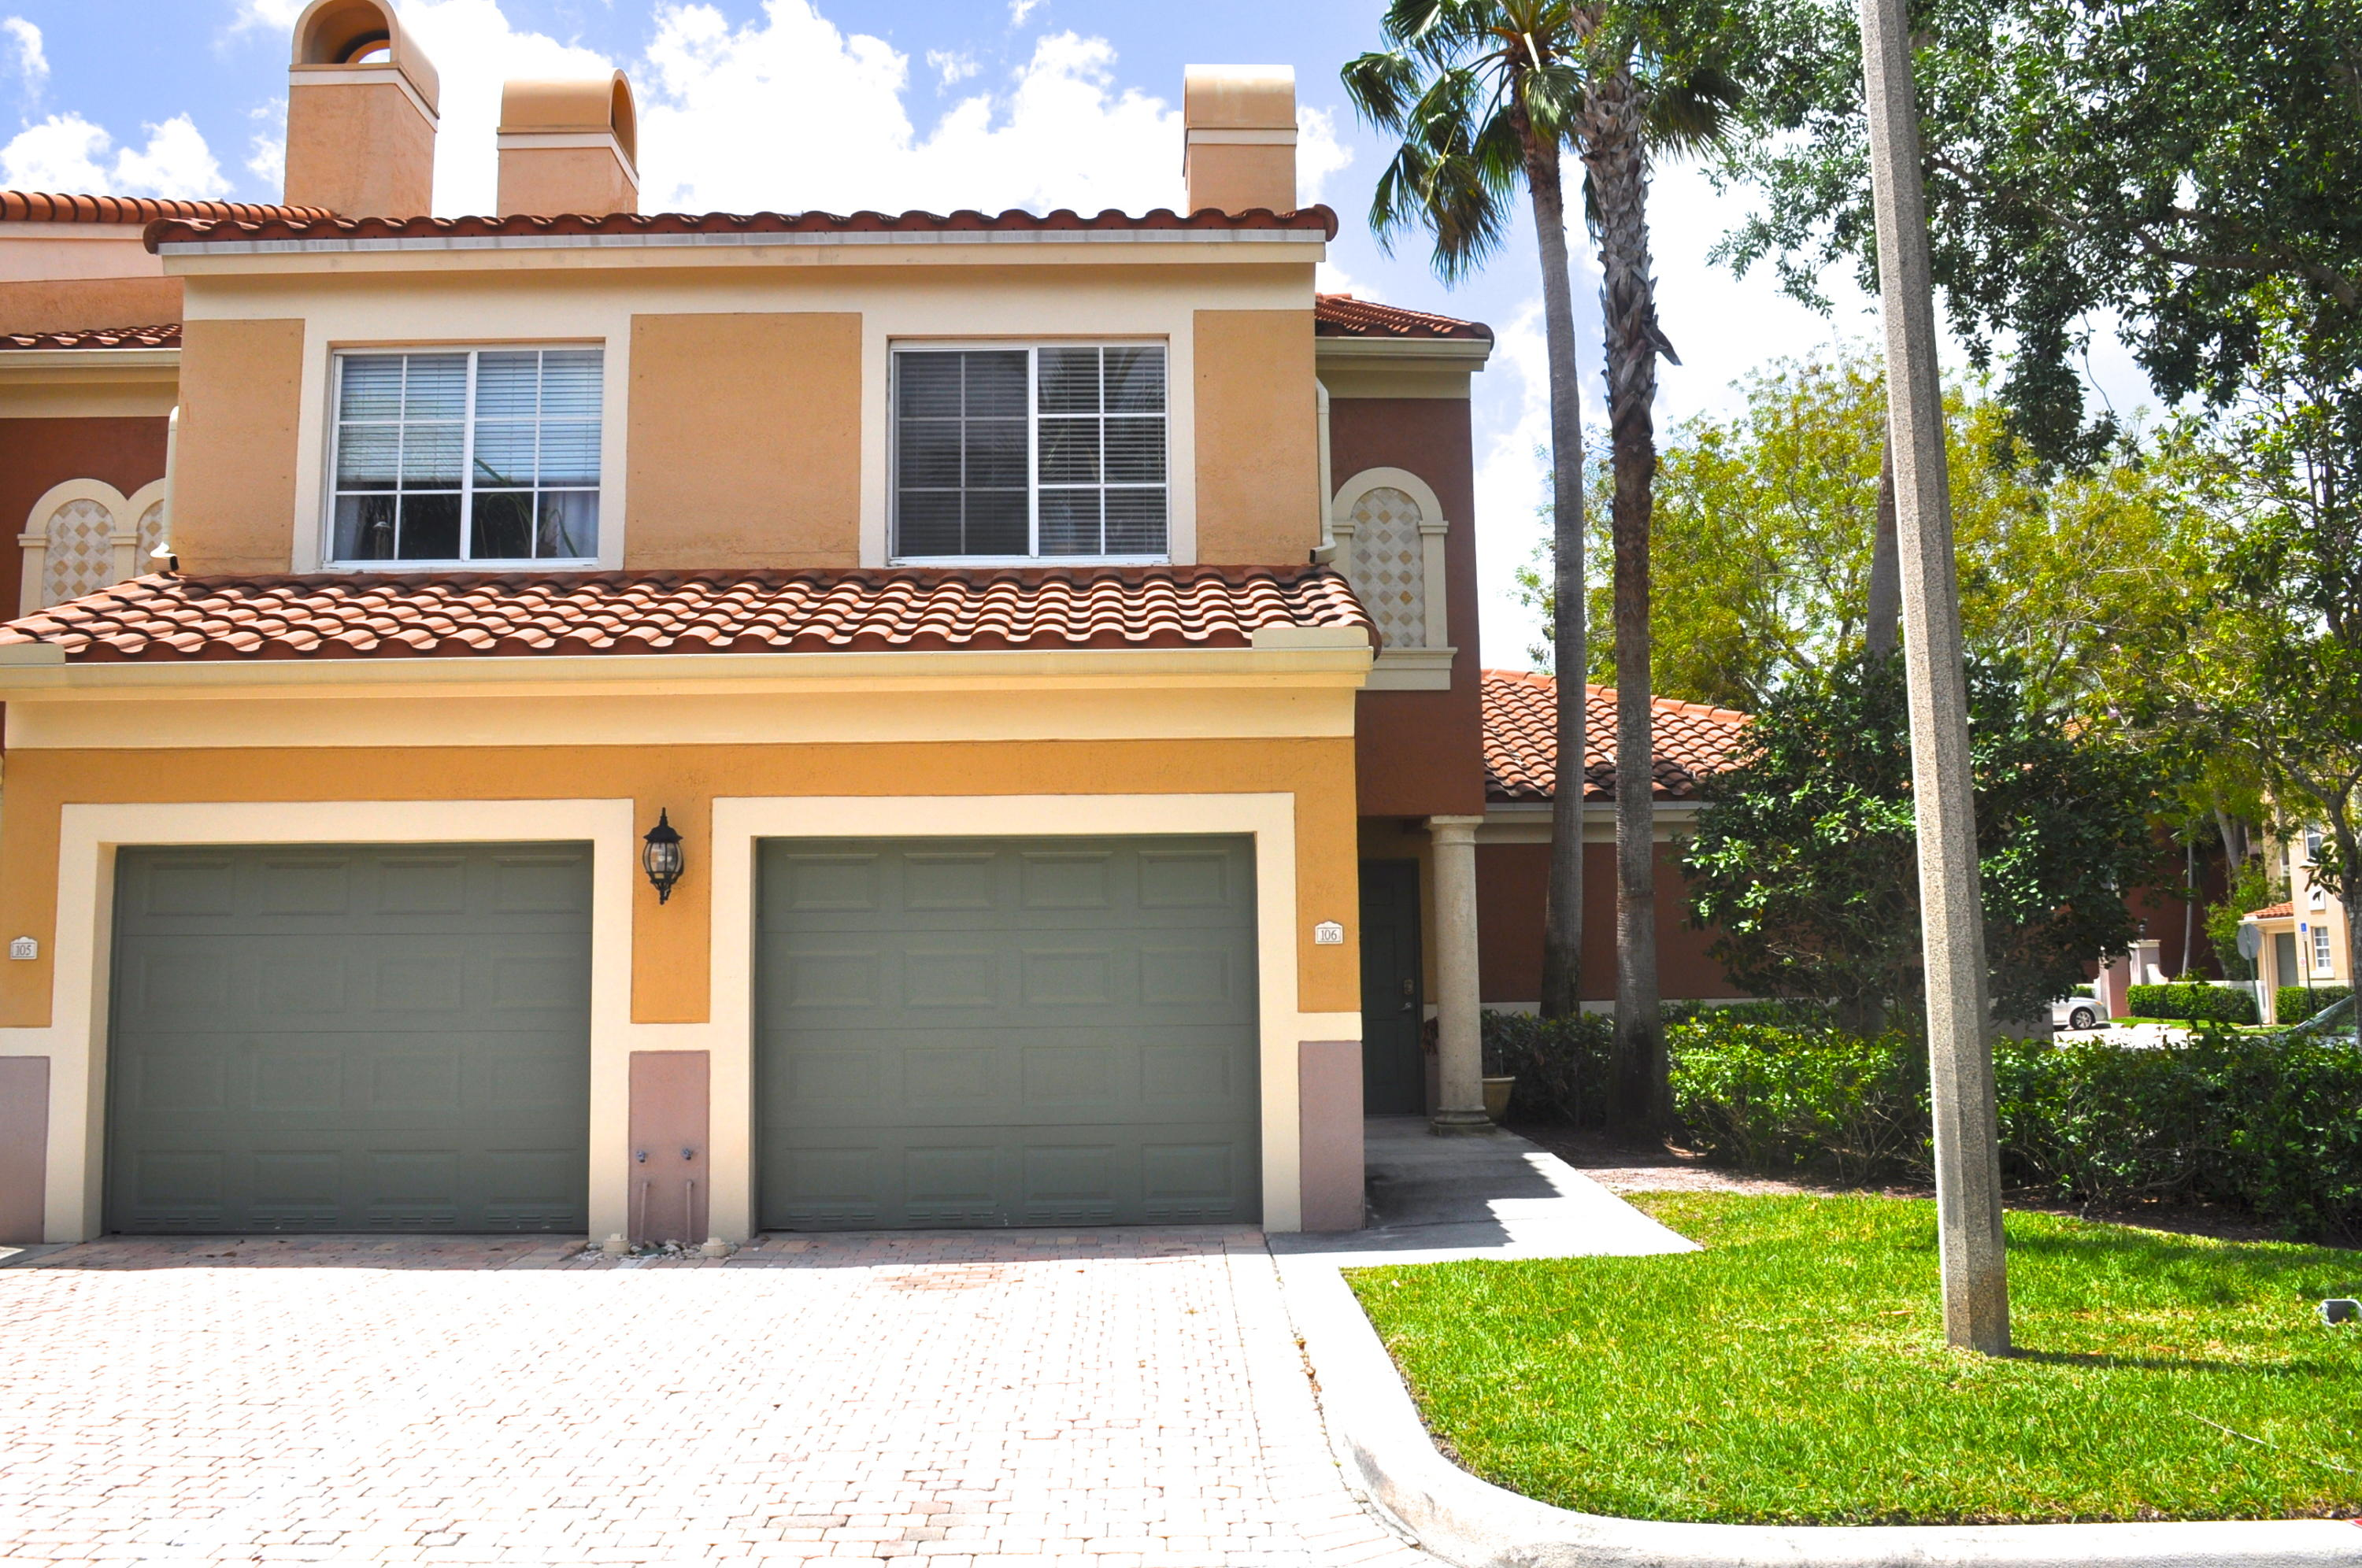 11775 St Andrews Place, Wellington, Florida 33414, 2 Bedrooms Bedrooms, ,2.1 BathroomsBathrooms,Condo/Coop,For Sale,ST ANDREWS AT THE POLO CLUB,St Andrews,1,RX-10428302